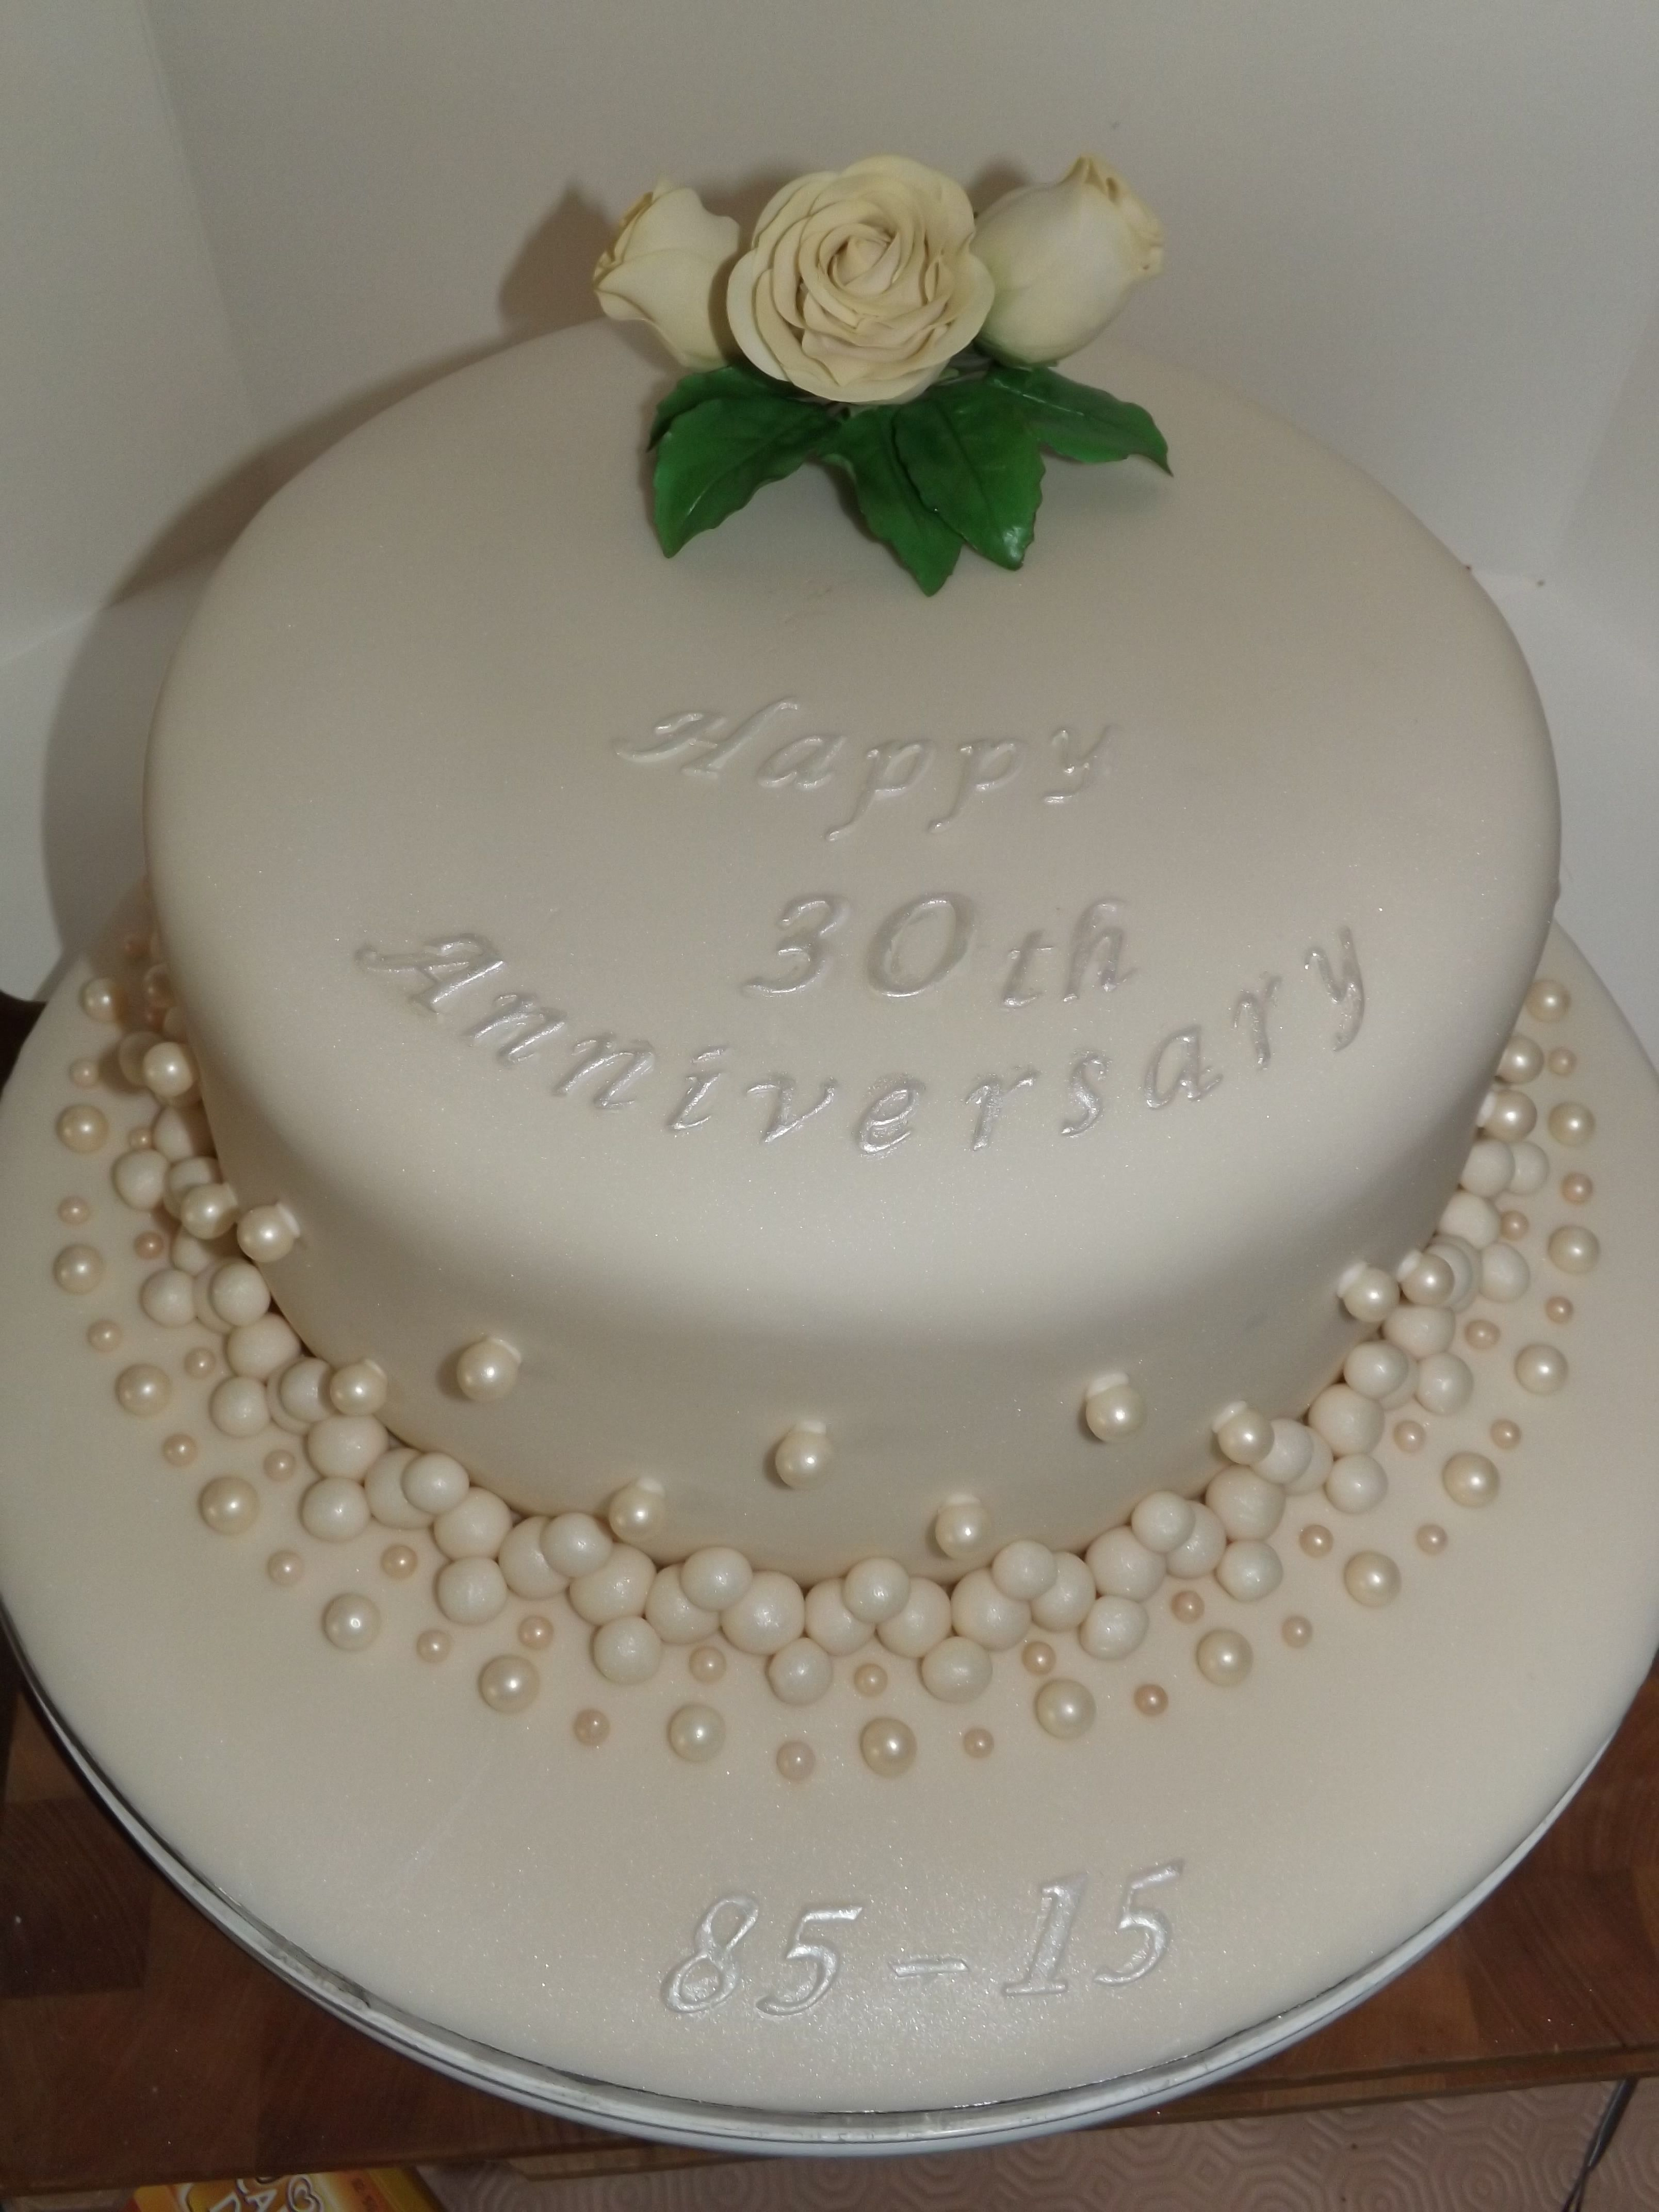 Pearl 30th Wedding Anniversary Cake With A Cream Sugar Rose Spray And Pearls